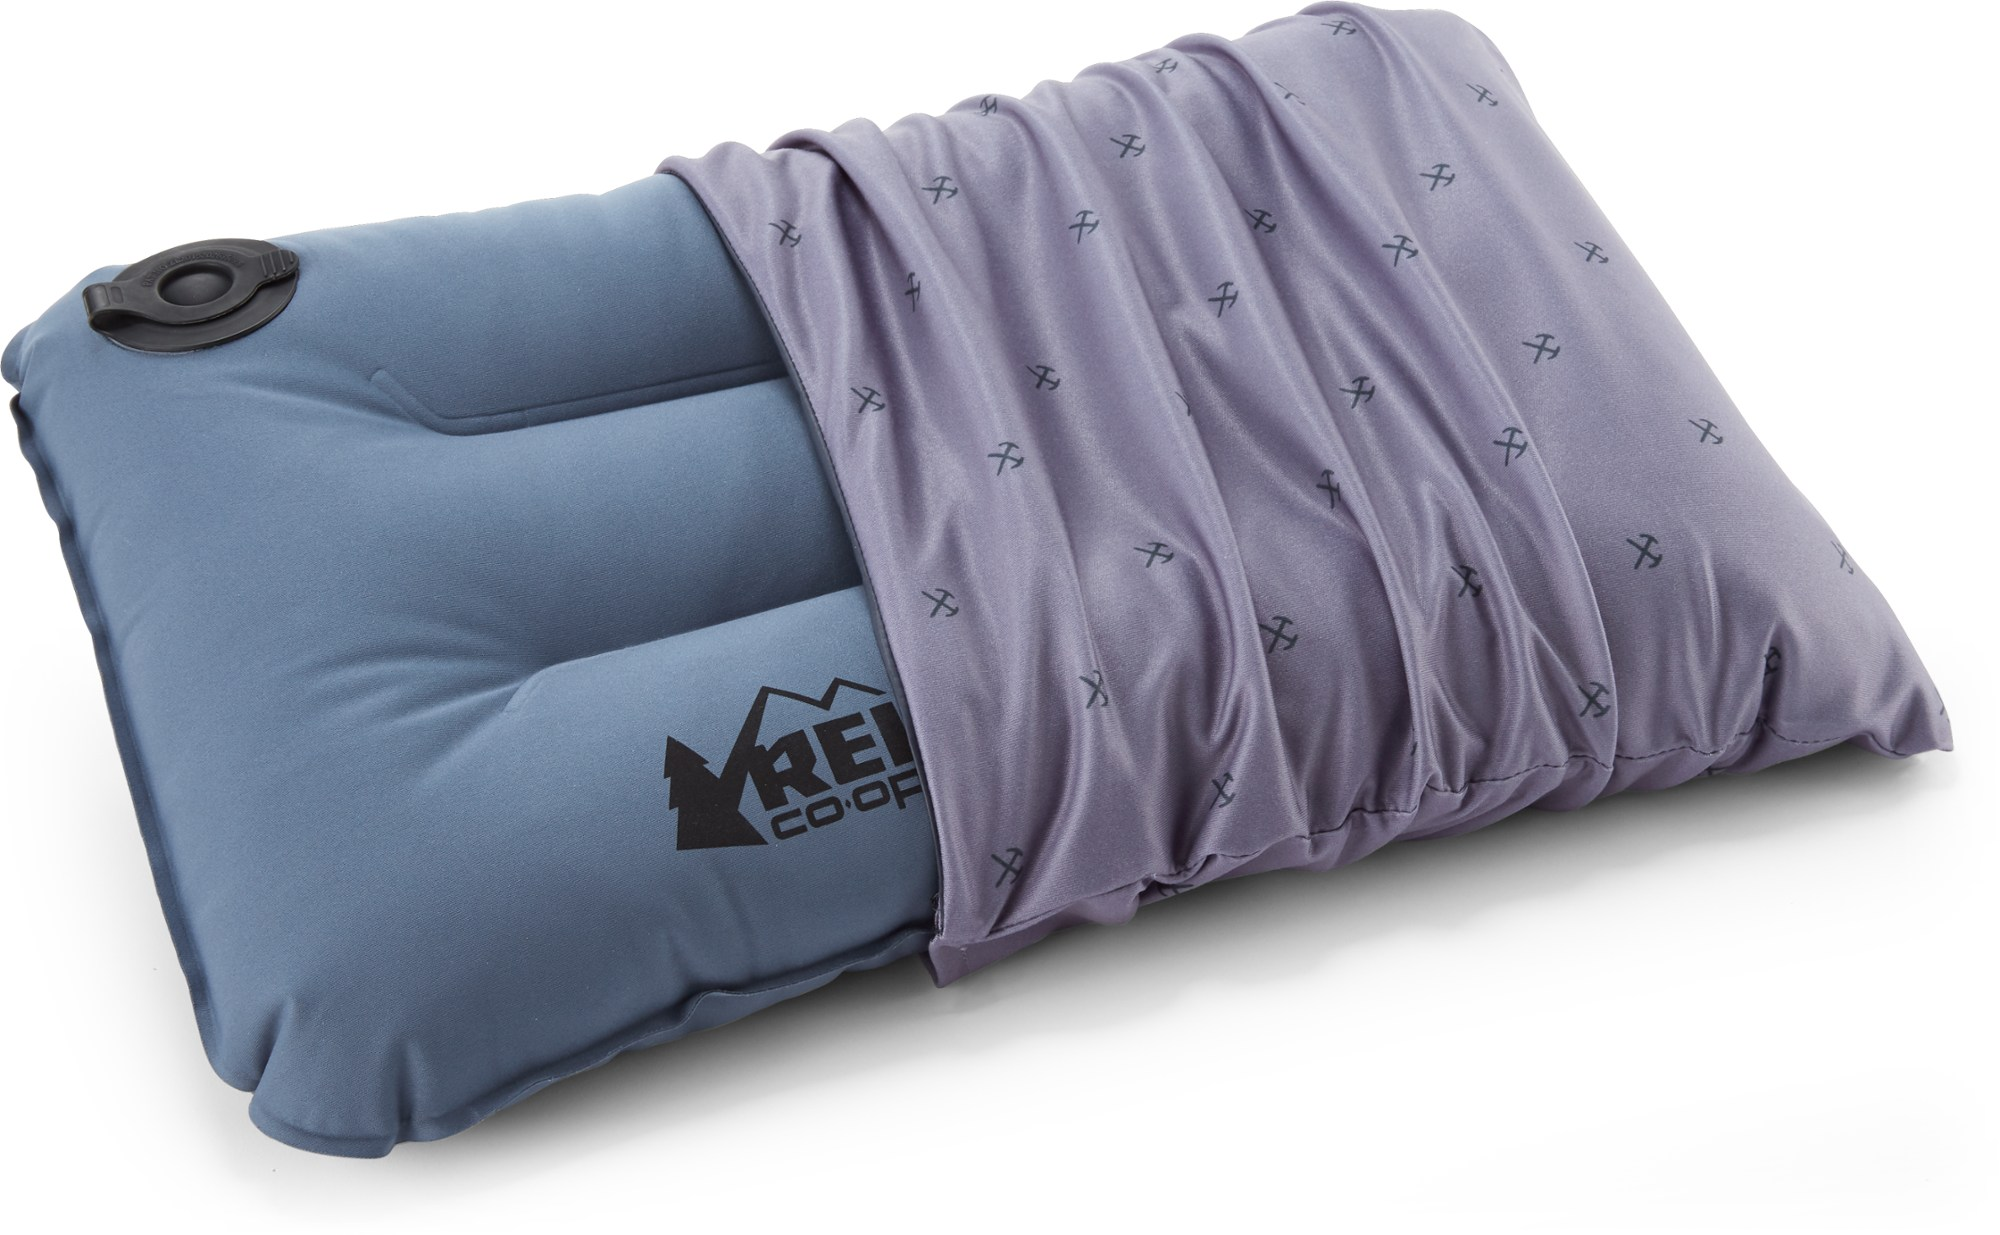 REI Co-op Camp Dreamer Self-Inflating Pillow